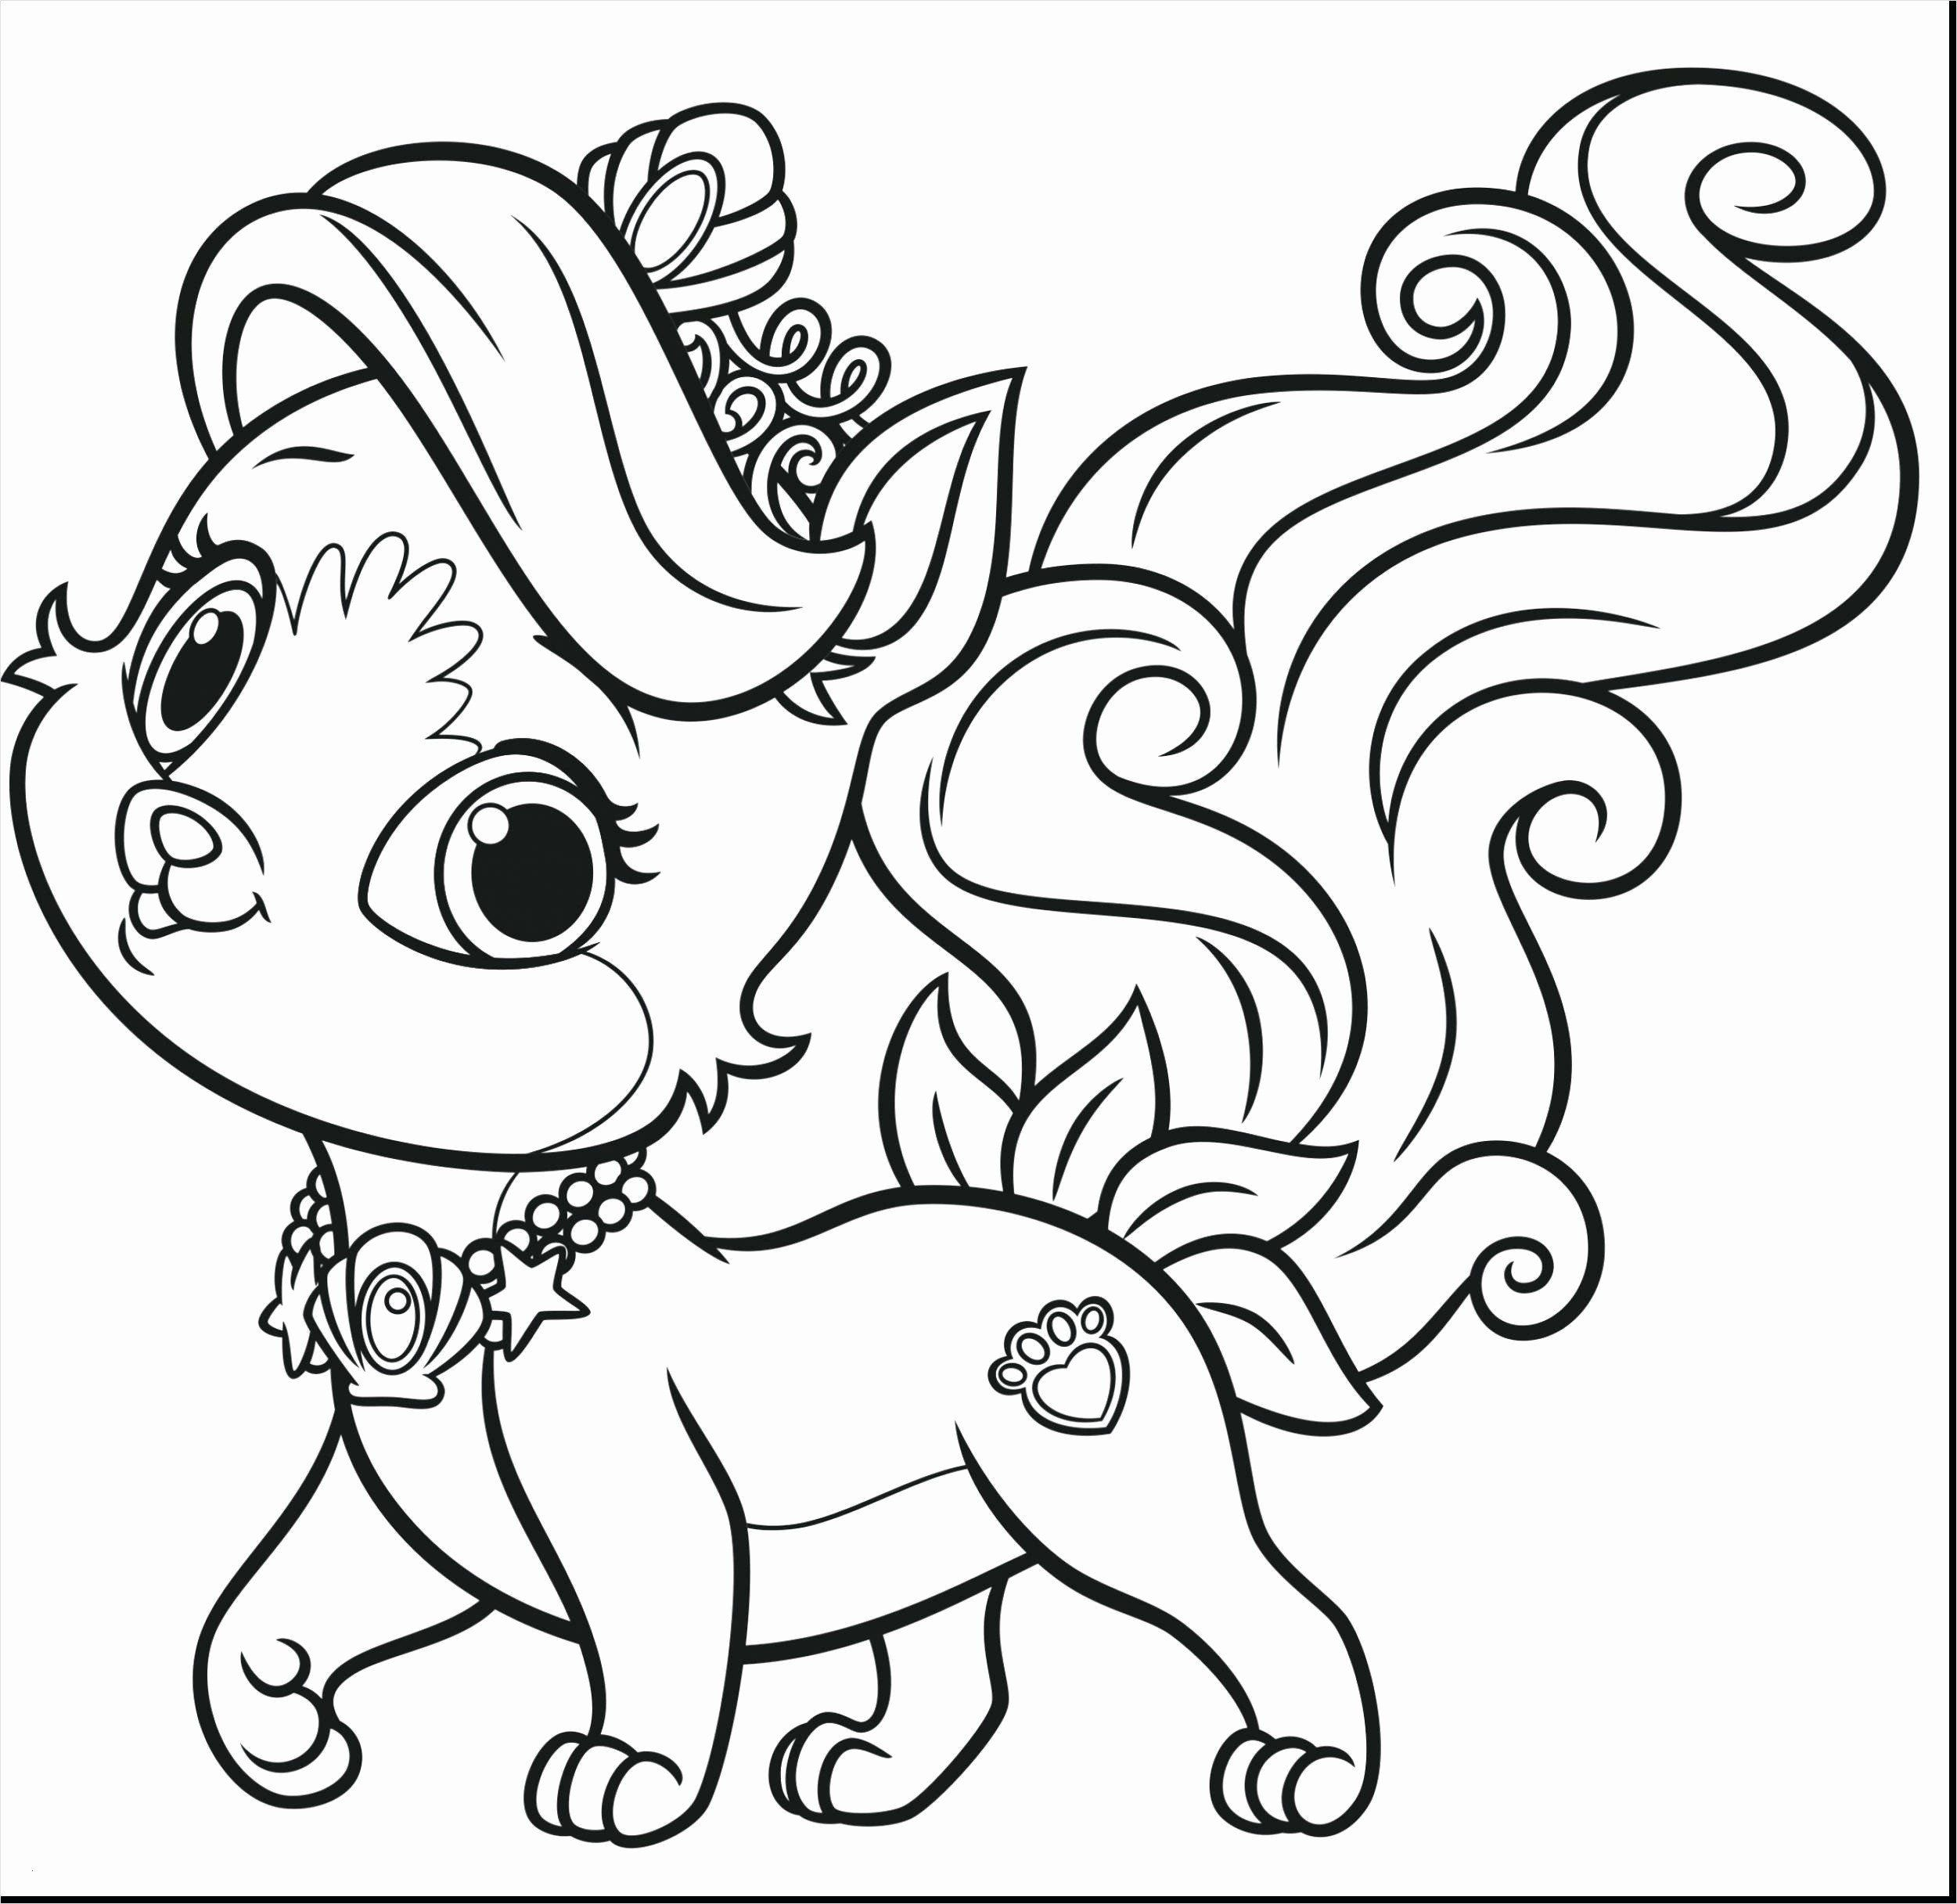 Cat Coloring Pages Printable Best Of Free 9 11 Coloring Pages Beautiful 38 Princess Cat Coloring Puppy Coloring Pages Cat Coloring Page Animal Coloring Pages